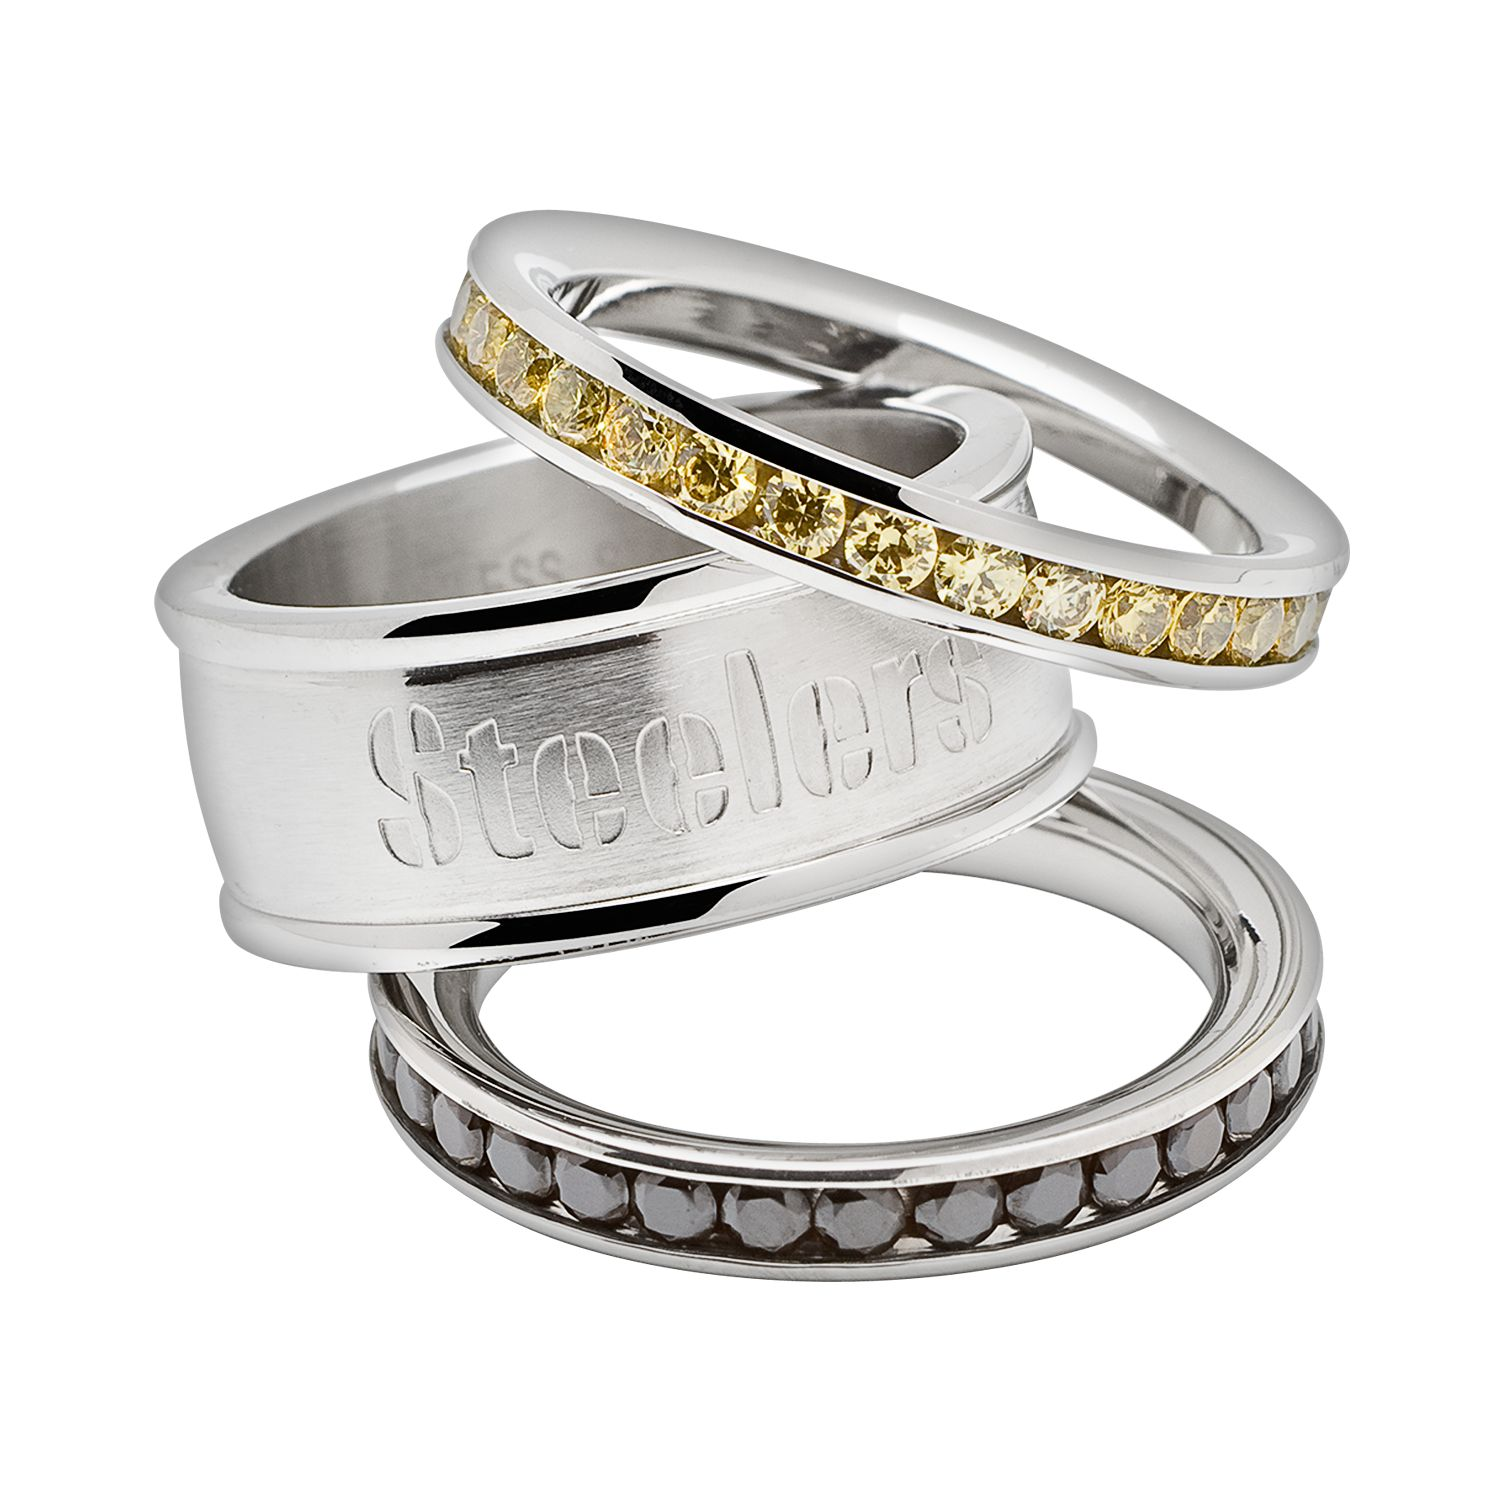 Sale Pittsburgh Steelers Stainless Steel Crystal Stack Ring Set